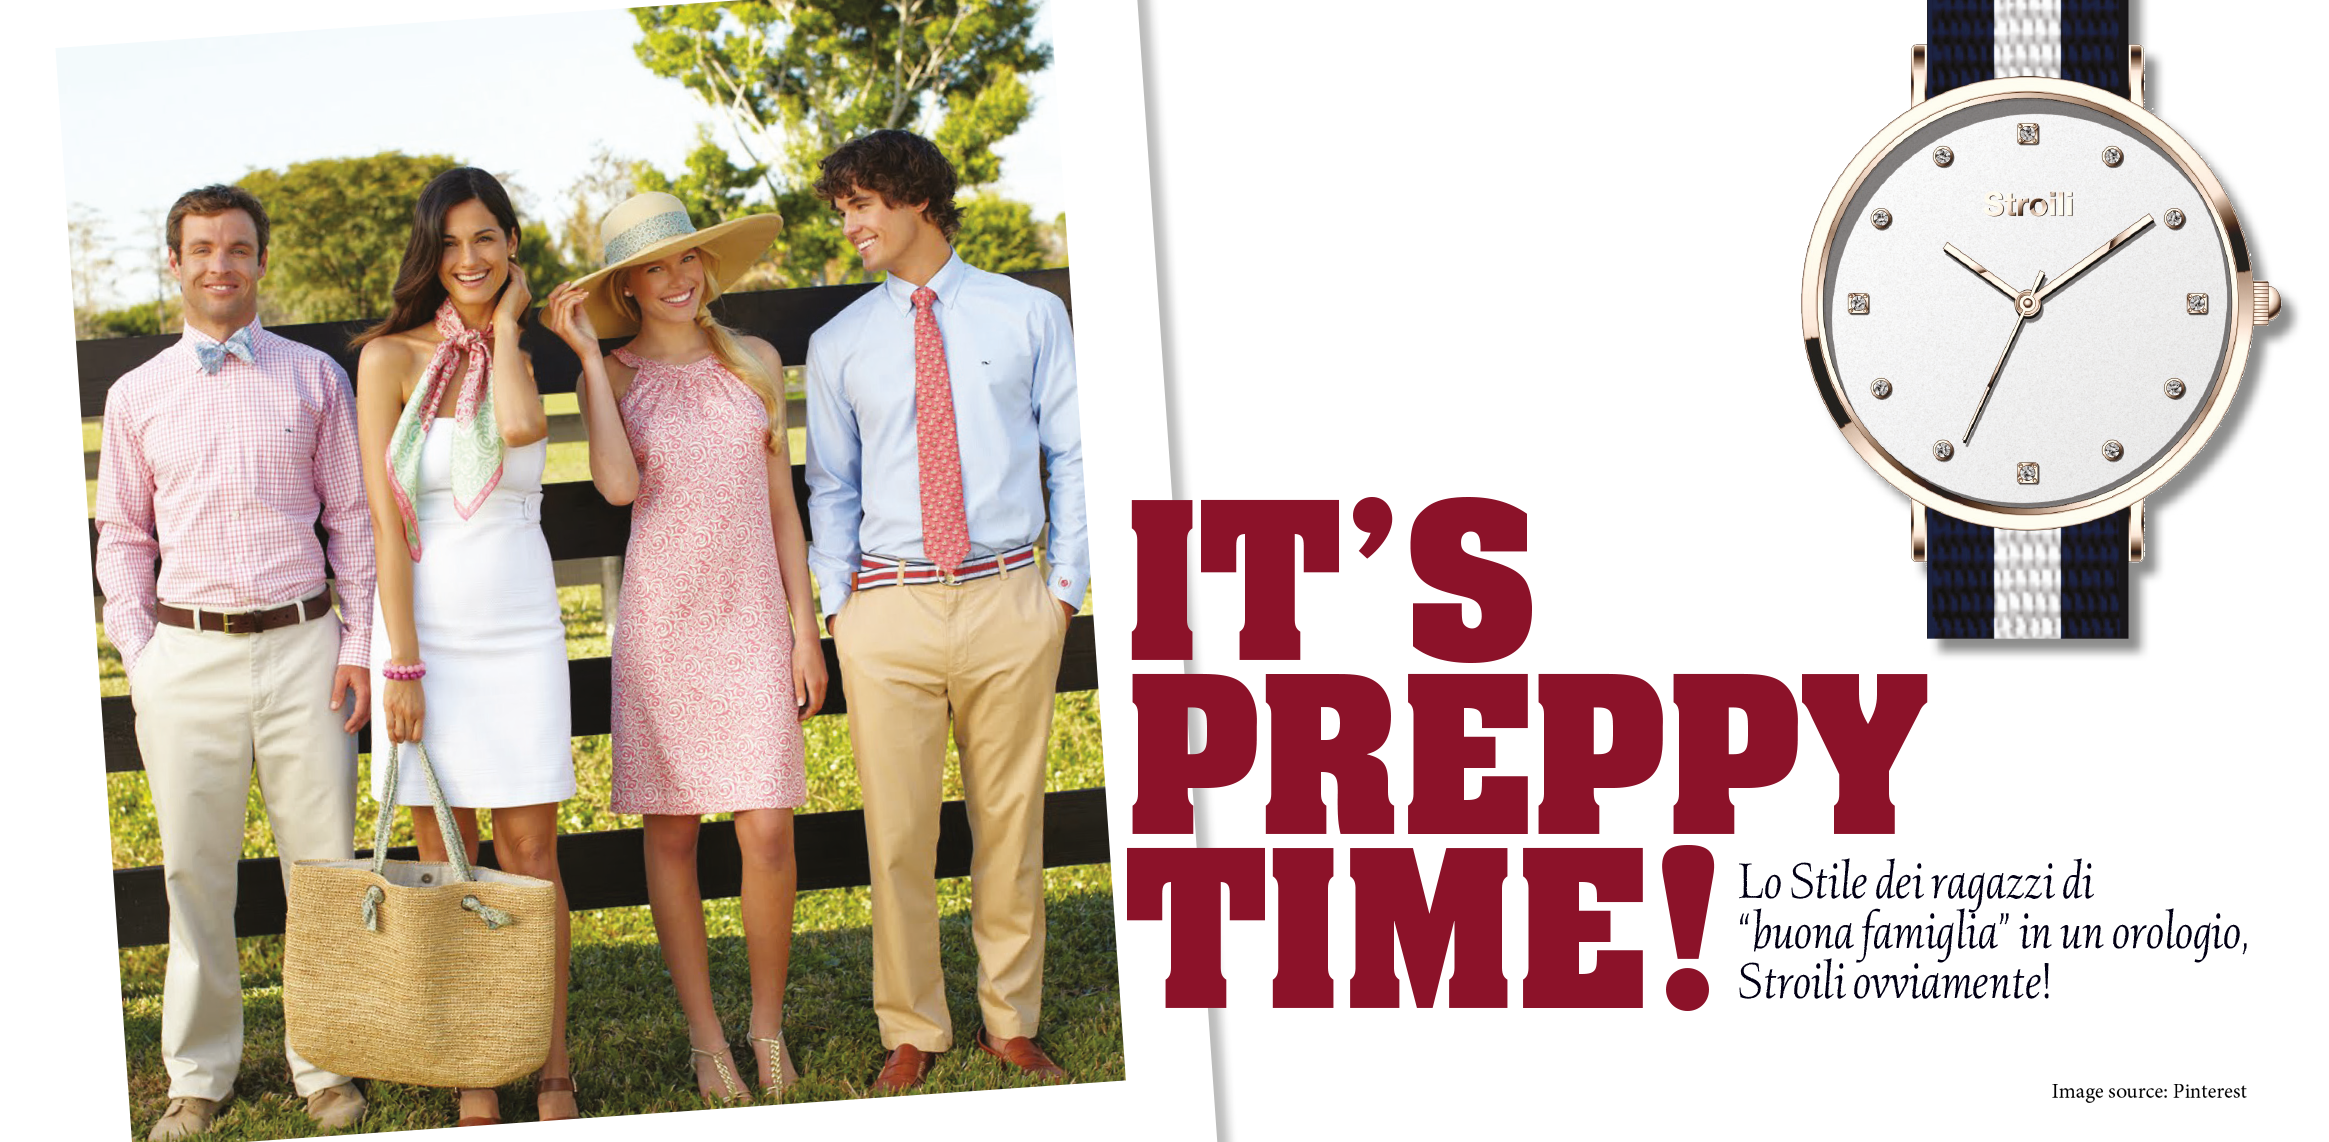 IT'S PREPPY TIME!